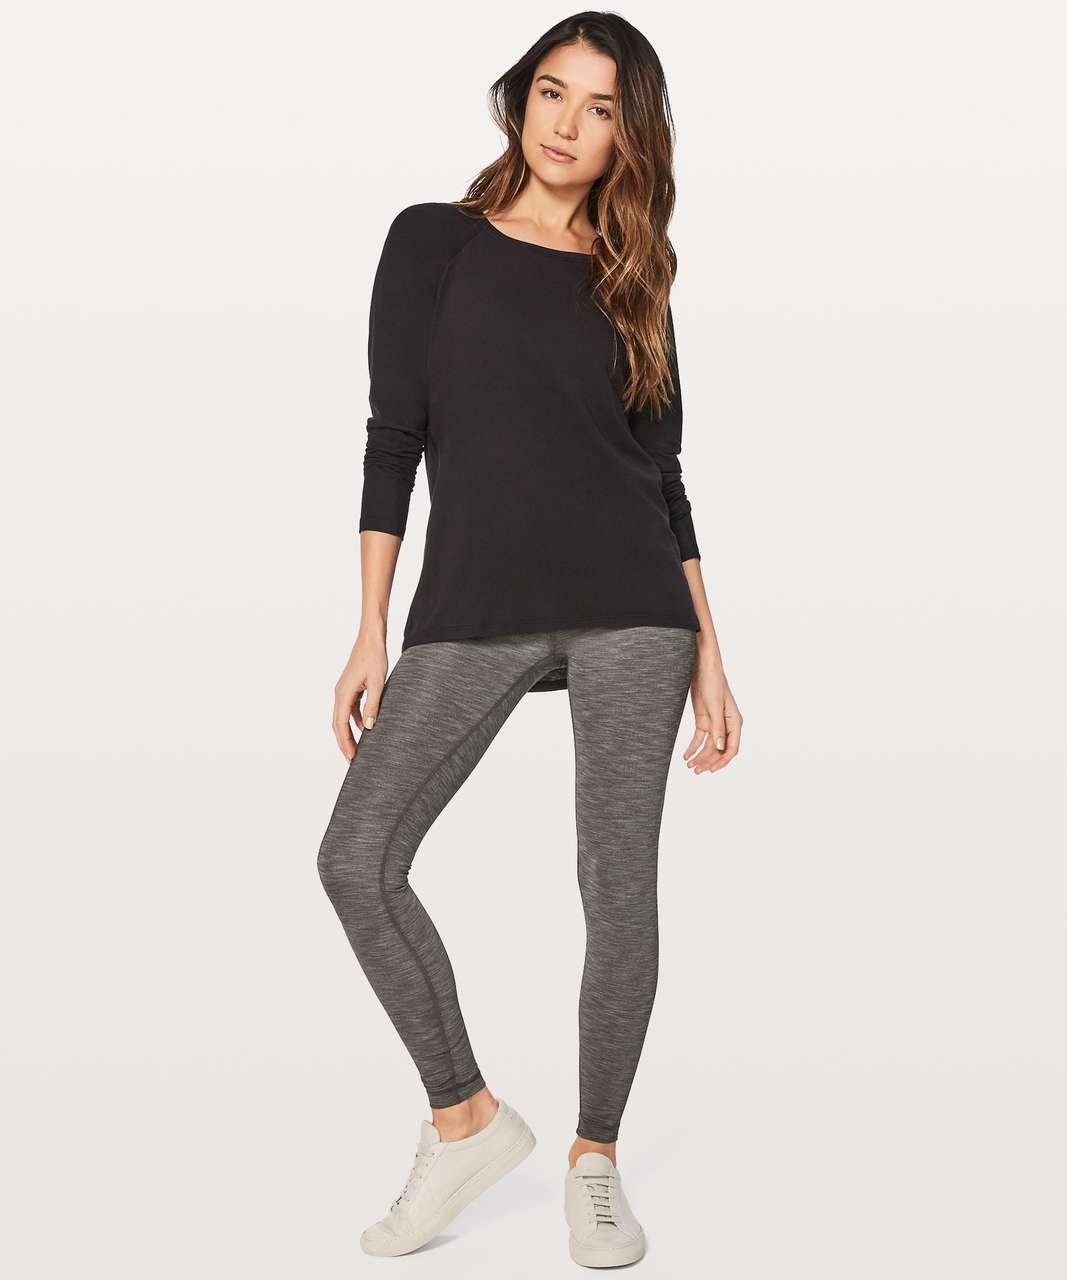 "Lululemon Wunder Under Hi-Rise Tight Full-On Luxtreme 28"" - Heathered Black"